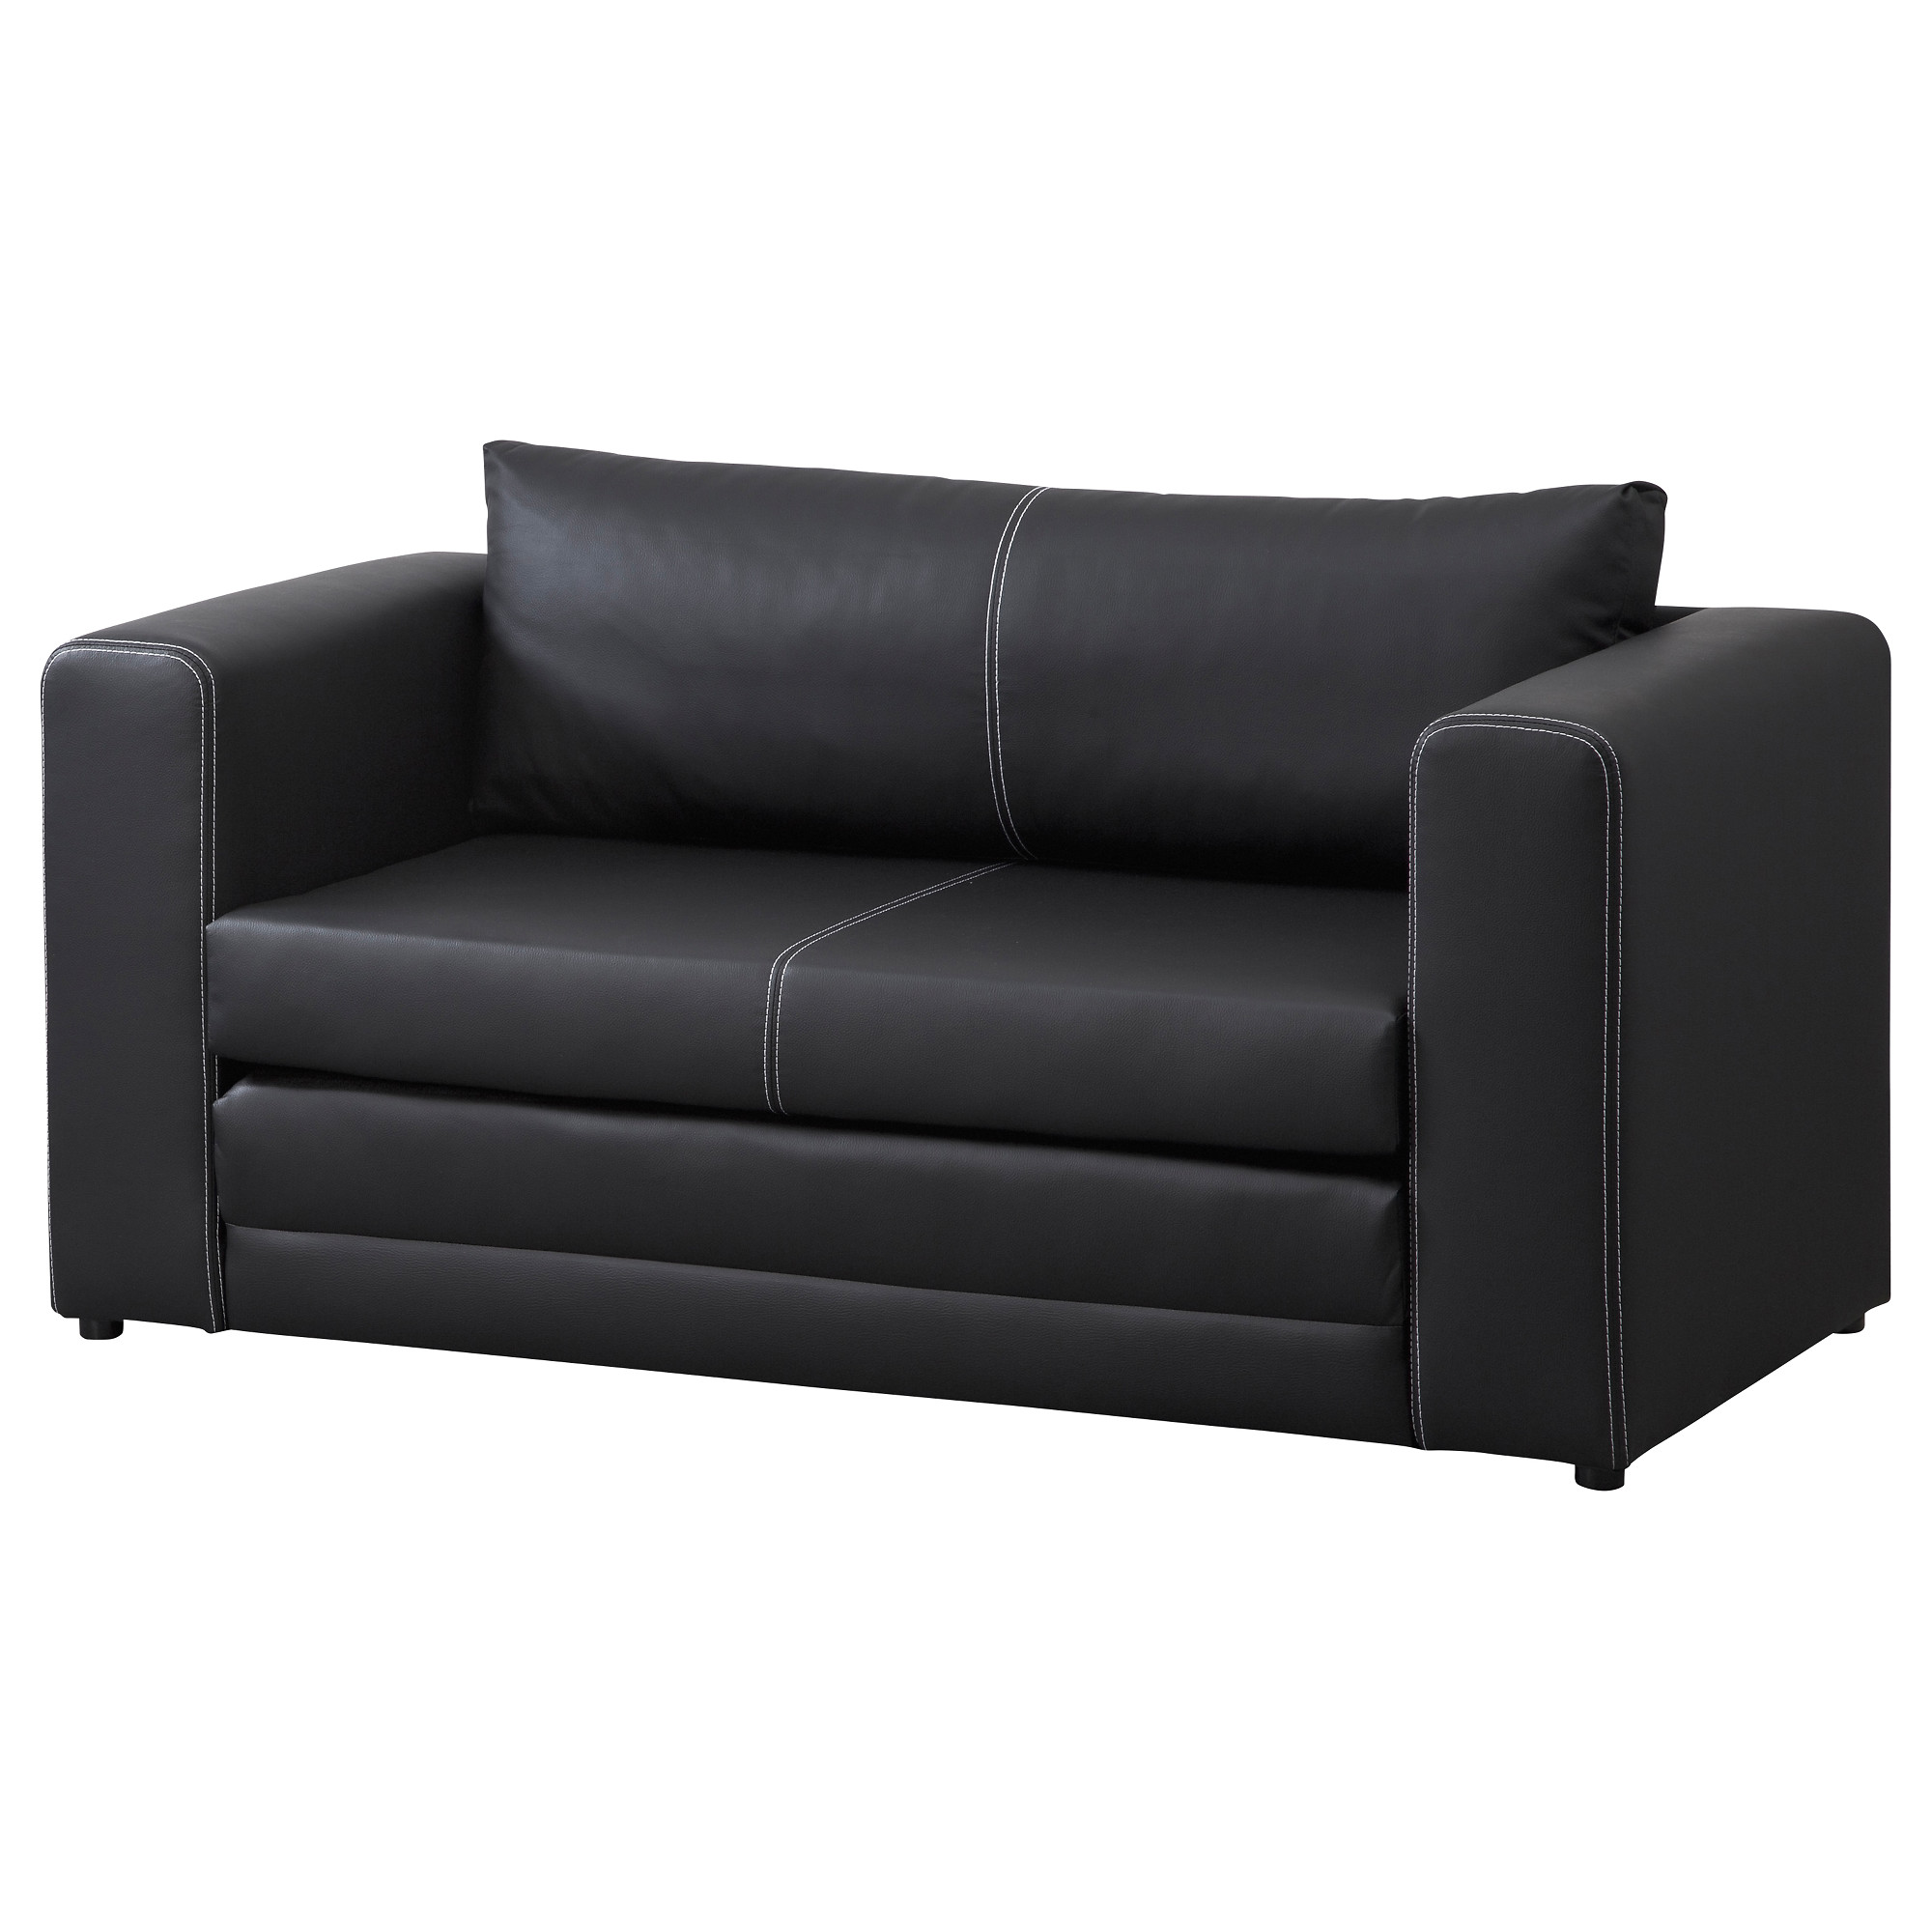 Ikea Faktum Eckschrank Karussell ~ Black Convertible Sofa Sleeper Sofa Beds 10 Second sun co